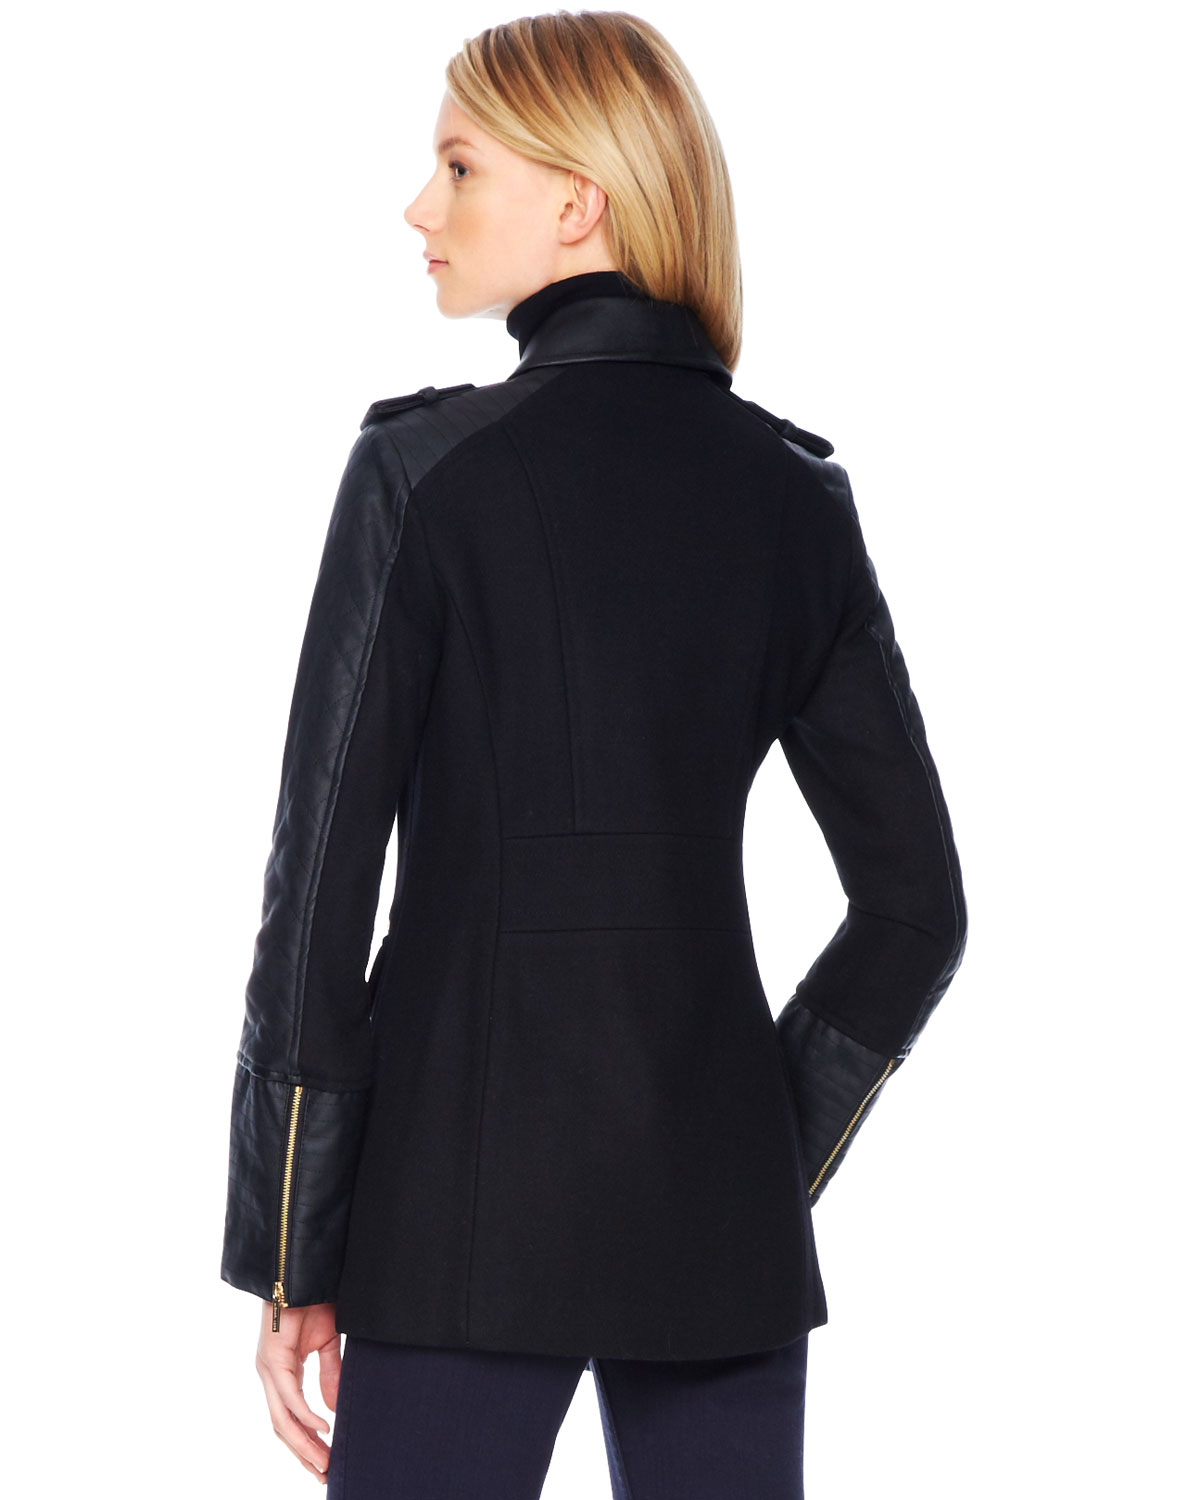 Michael kors Michael Faux Leather Sleeve Wool Coat in Black | Lyst